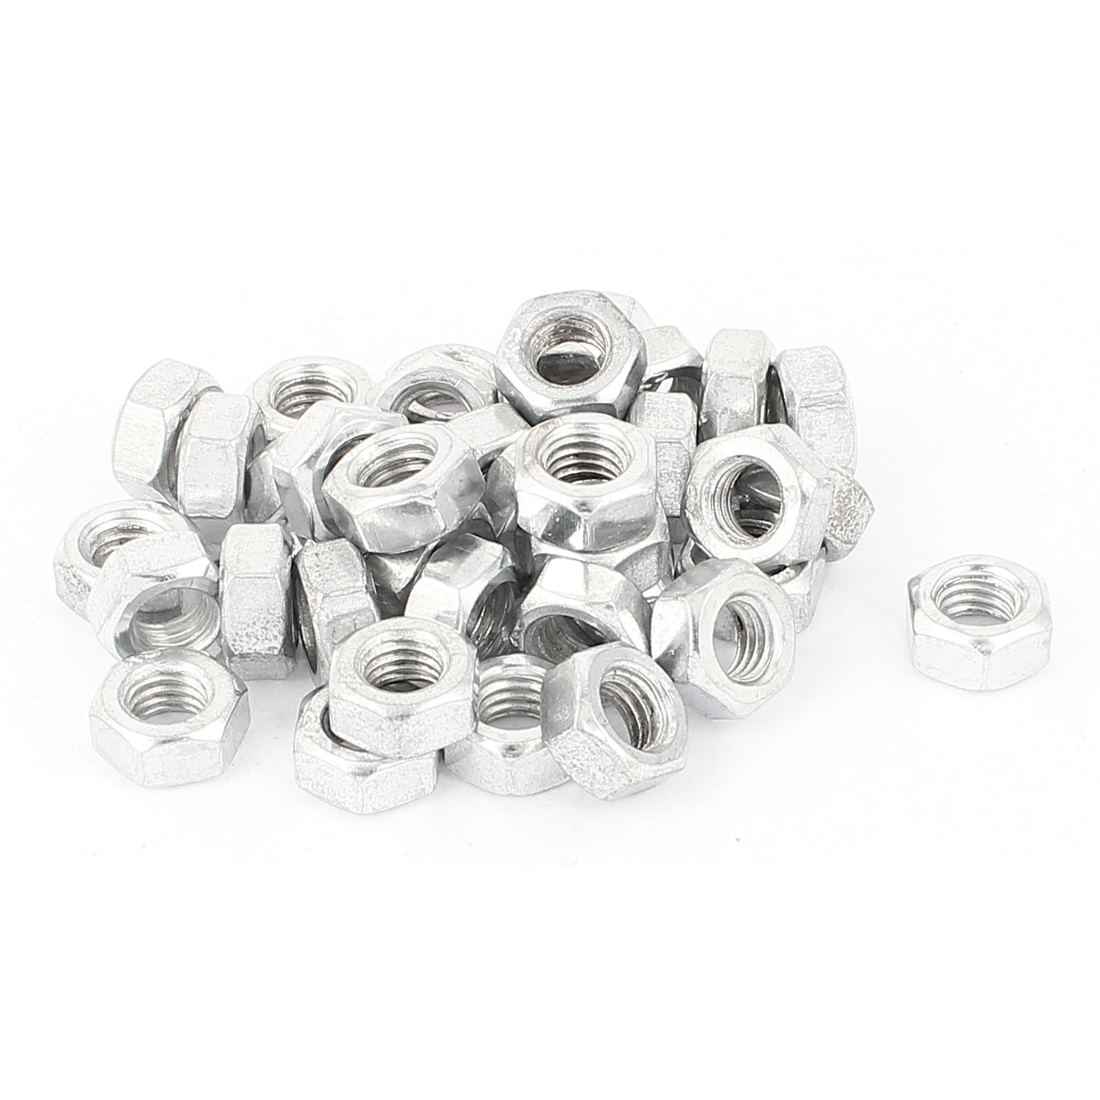 38 Pcs Metric M8 Hex Nuts Metal Fasteners for Screw Bolt